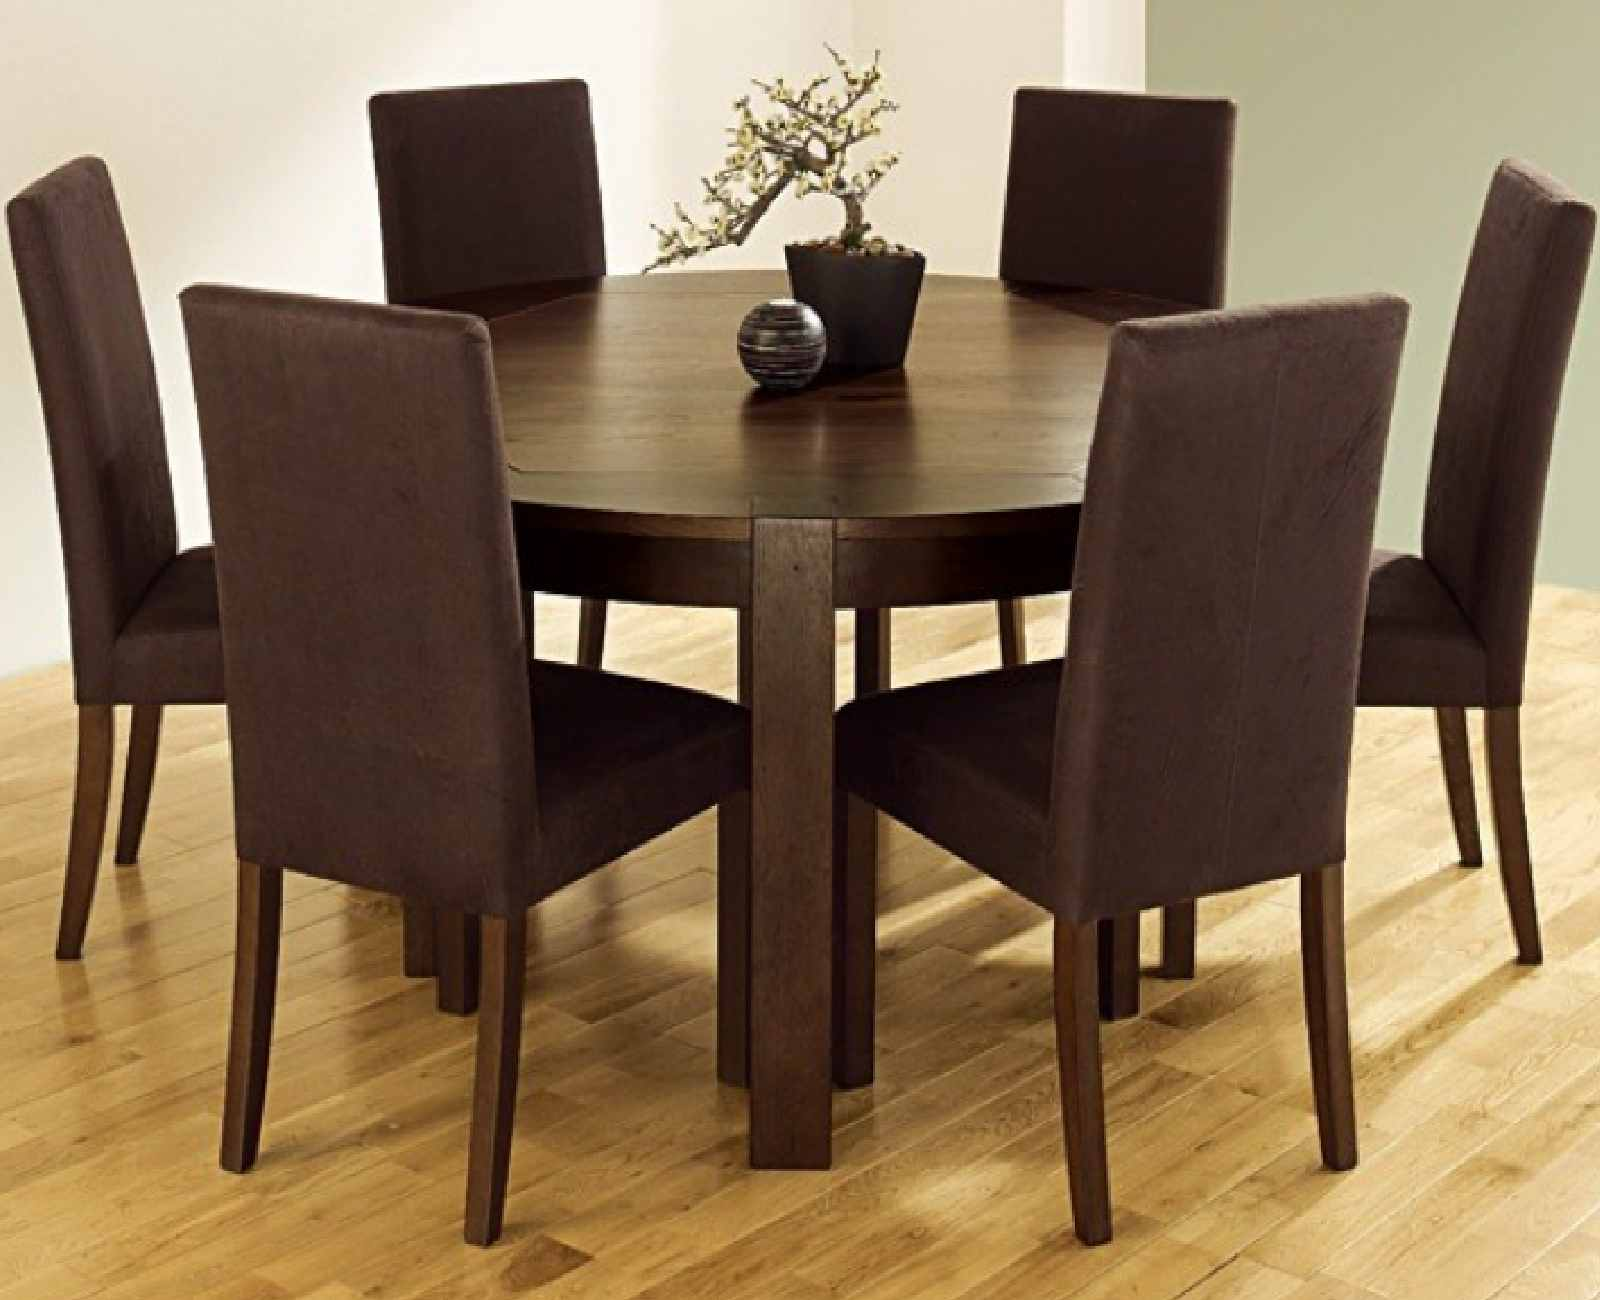 Getting a round dining room table for 6 by your own for Round dining table for 6